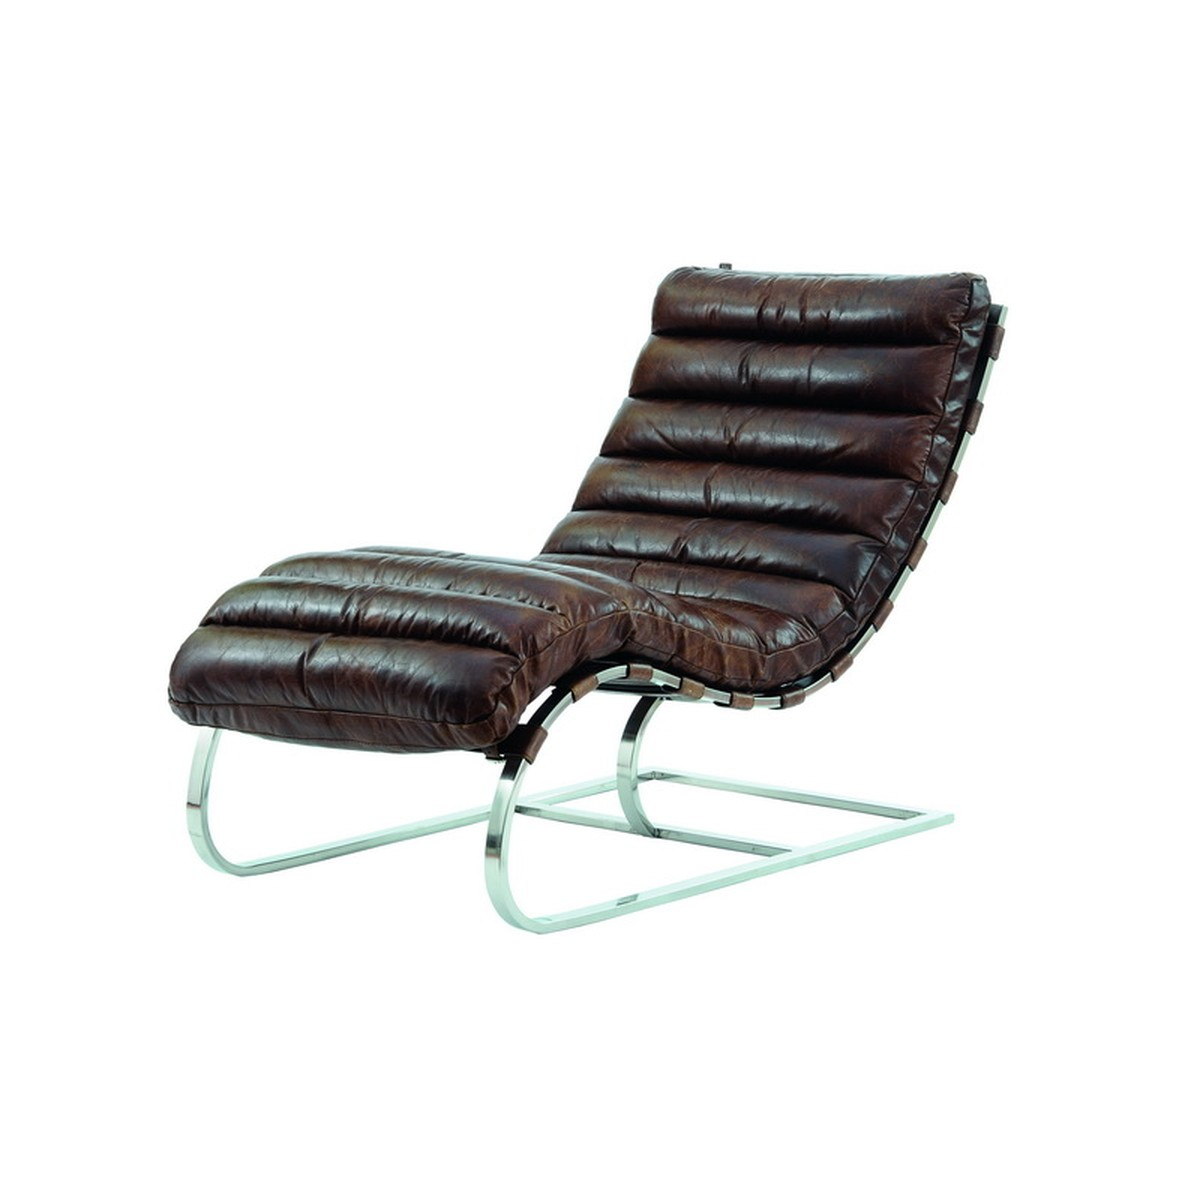 Schilliger Sélection Halo Creative Fauteuil Coventry Brun marron 60x113x86cm. 0.5803m³. 35.5kg